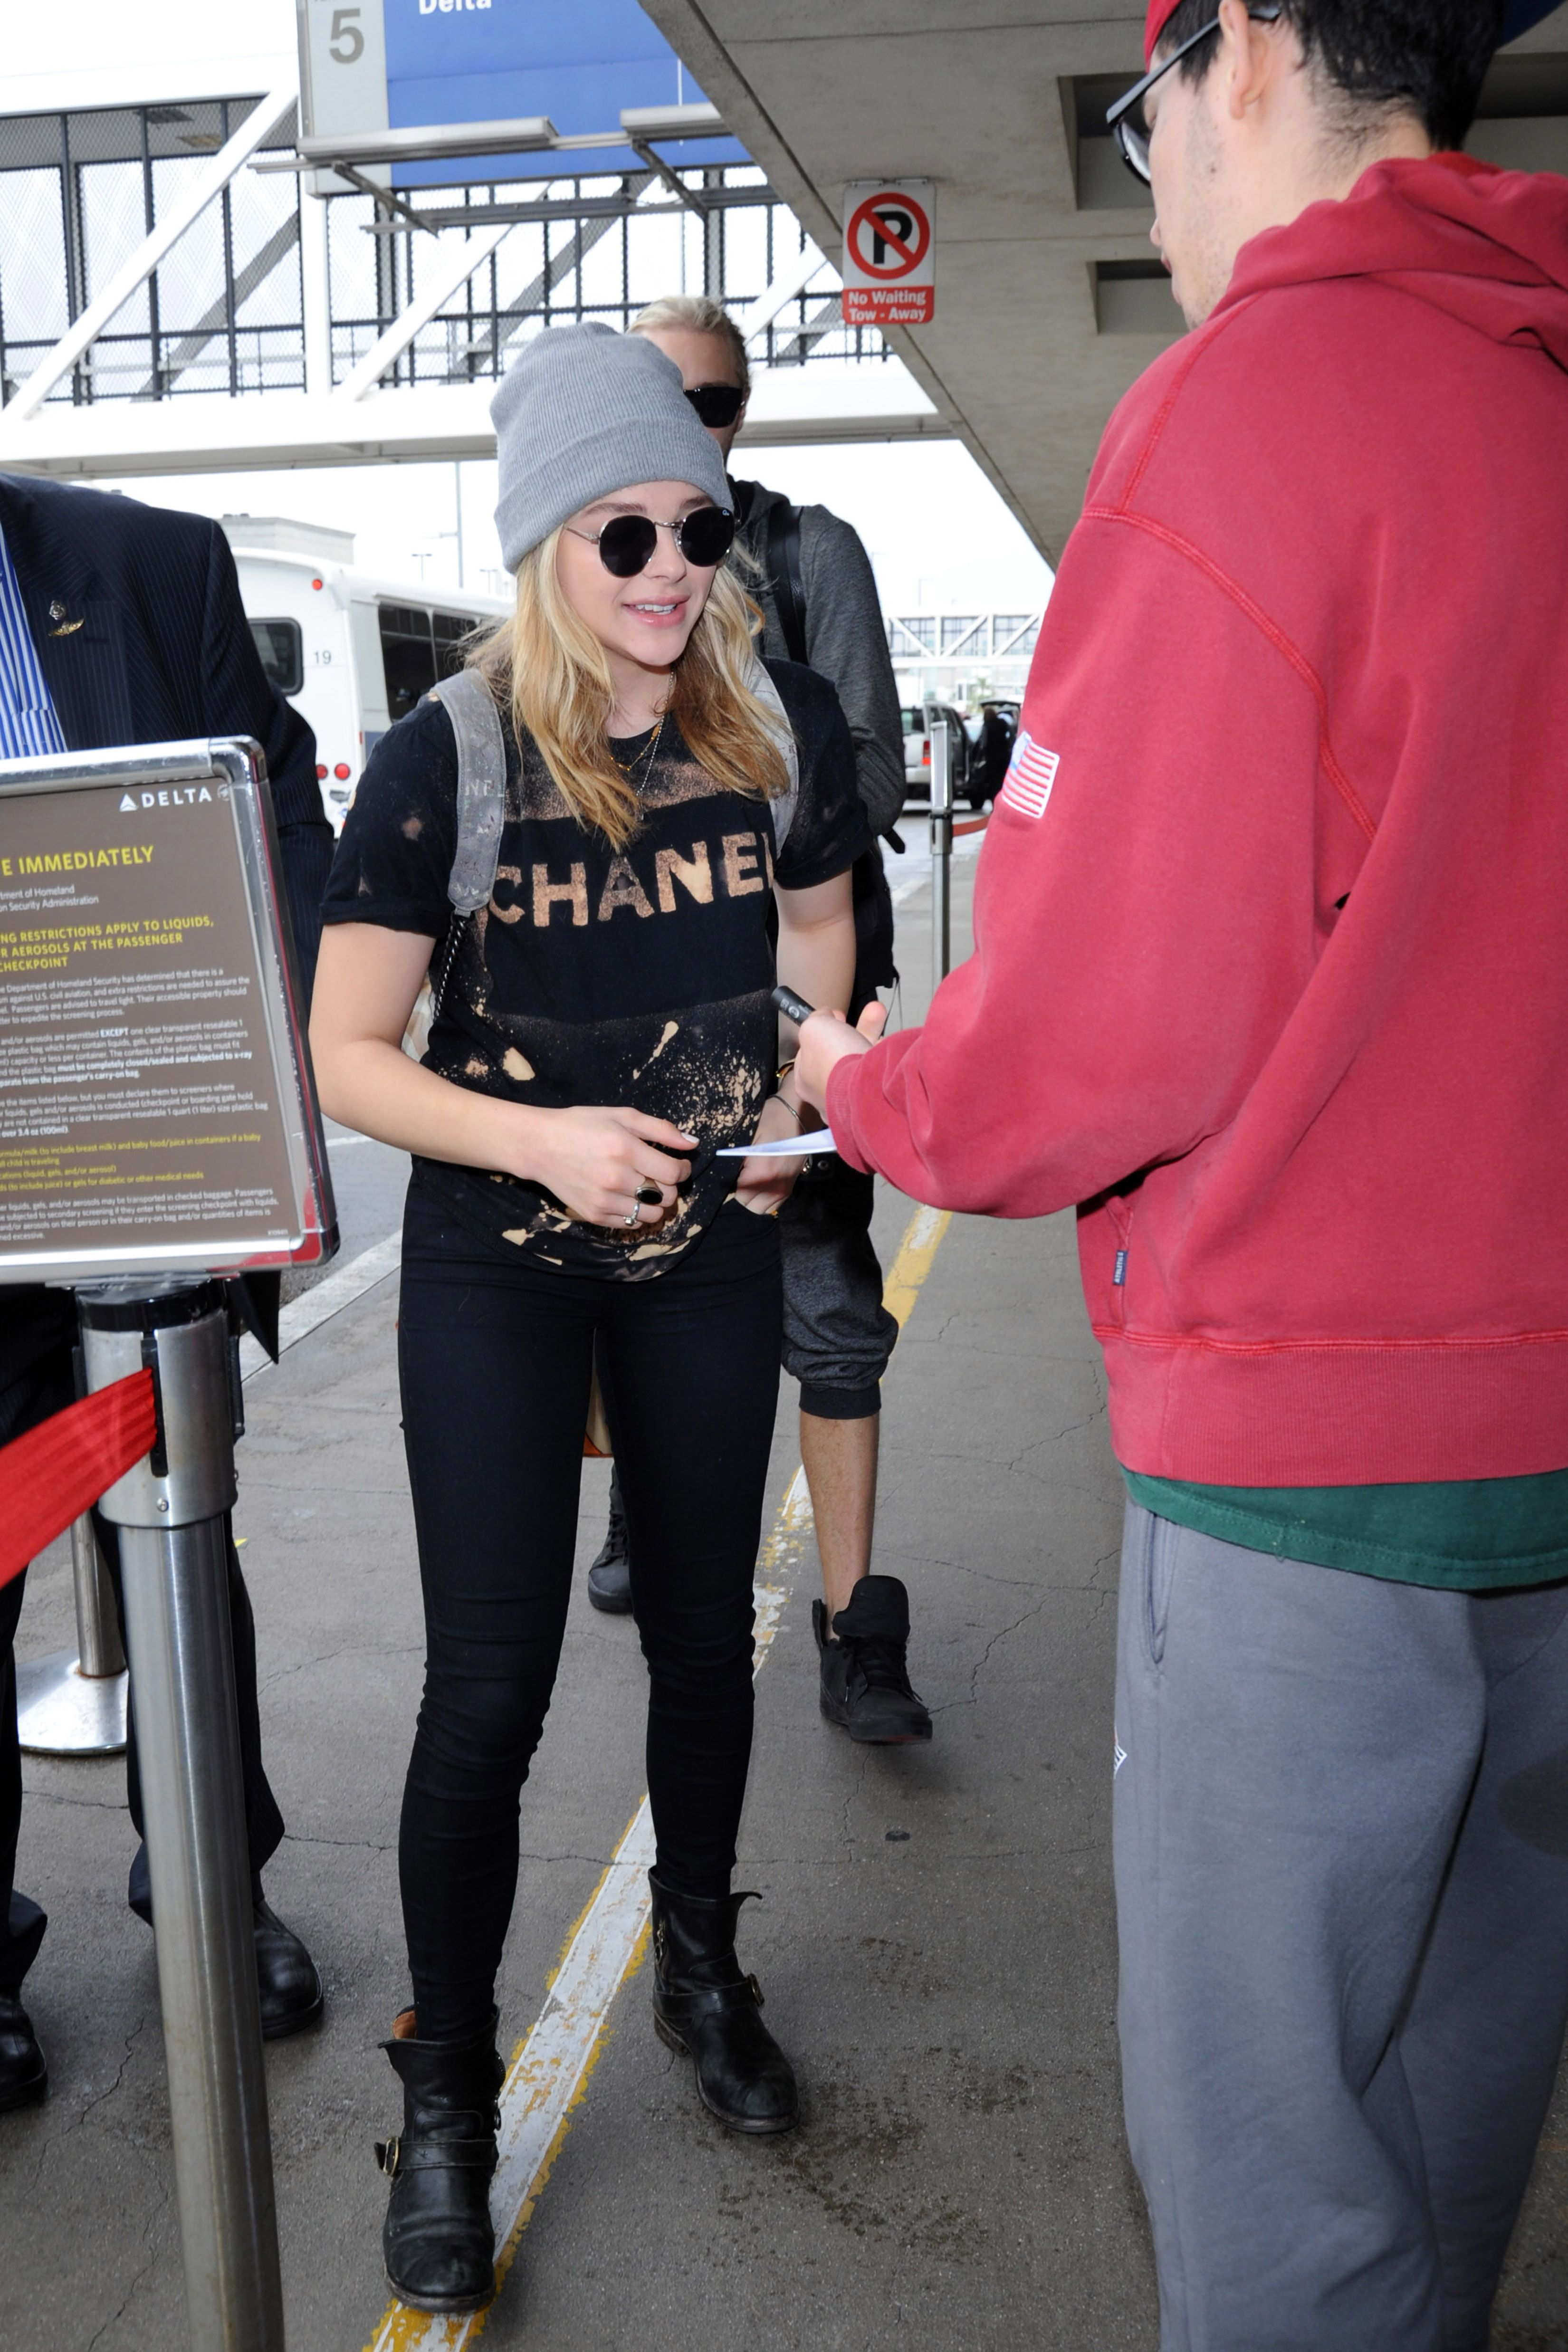 Chlomo Gallery: The best Chloe Moretz gallery™ - photoshoots, candids, events, screenshots and more